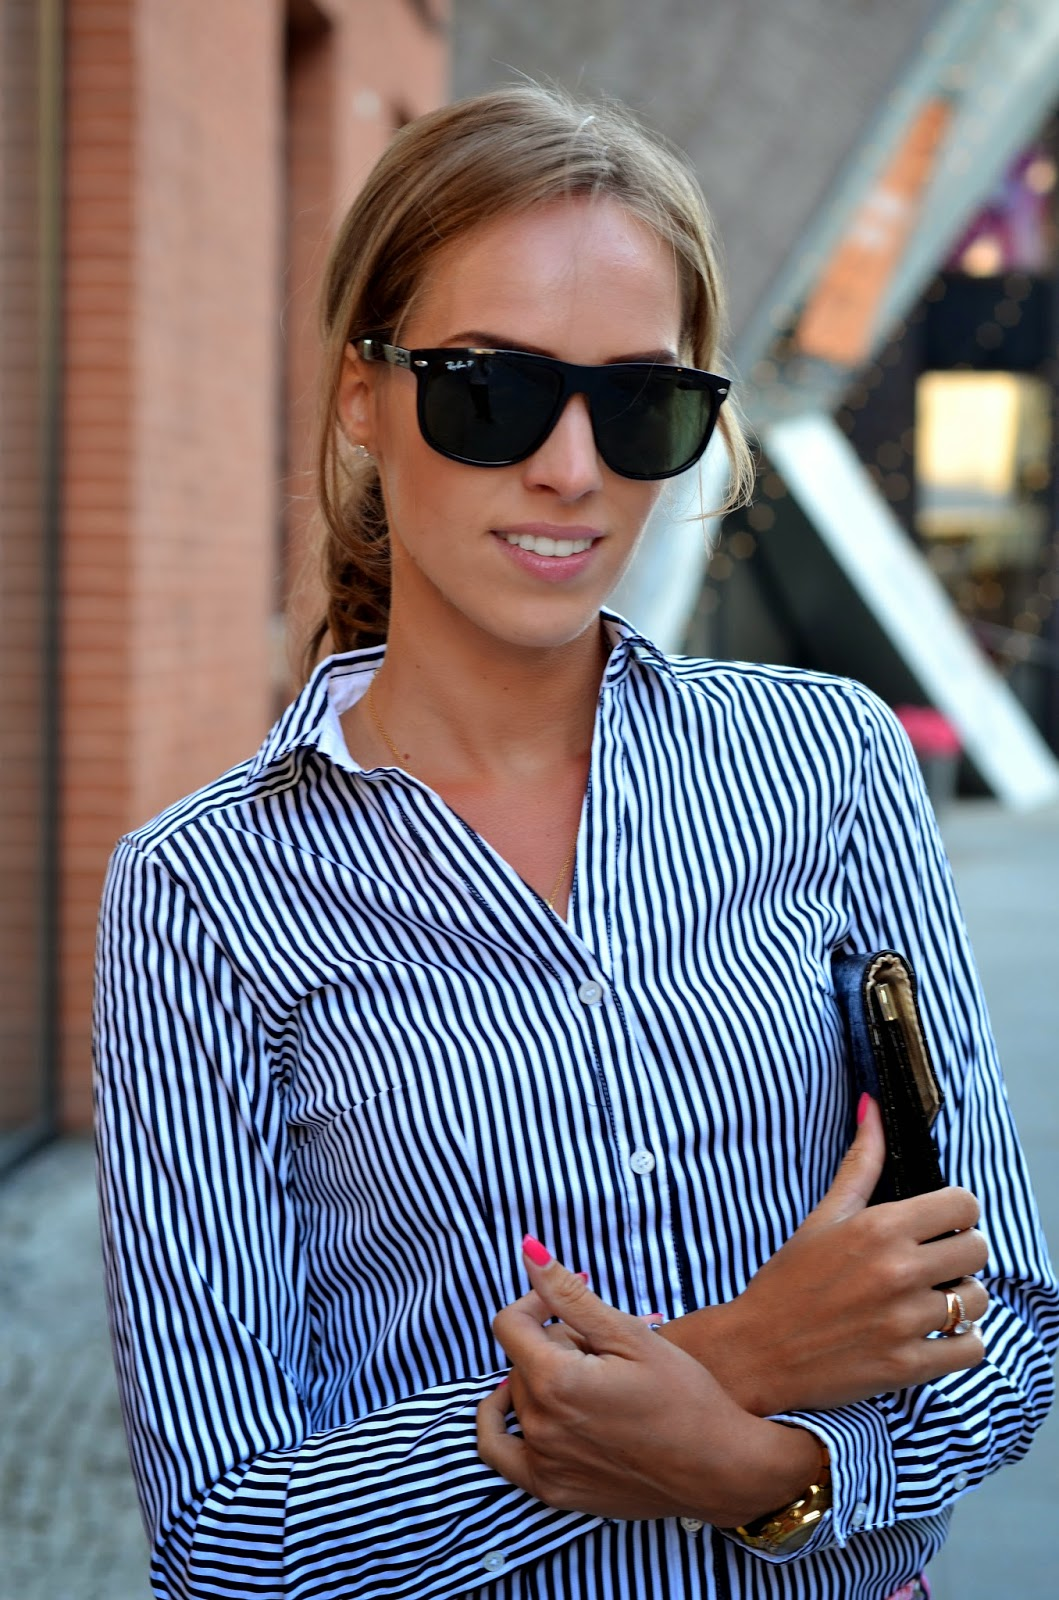 ray ban high street sunglasses black white striped shirt